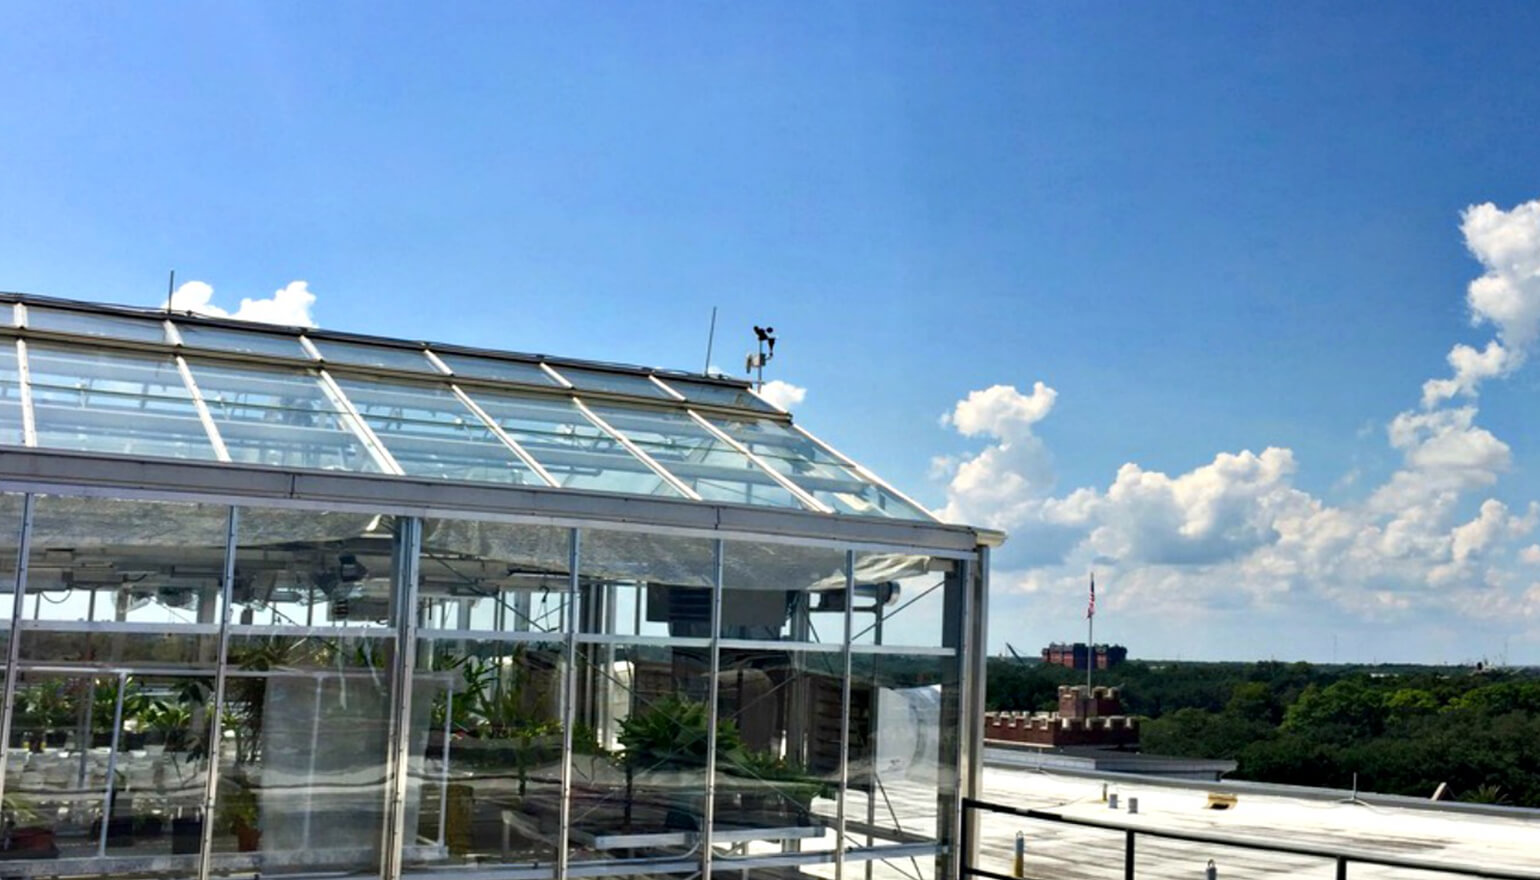 View of rooftop greenhouse